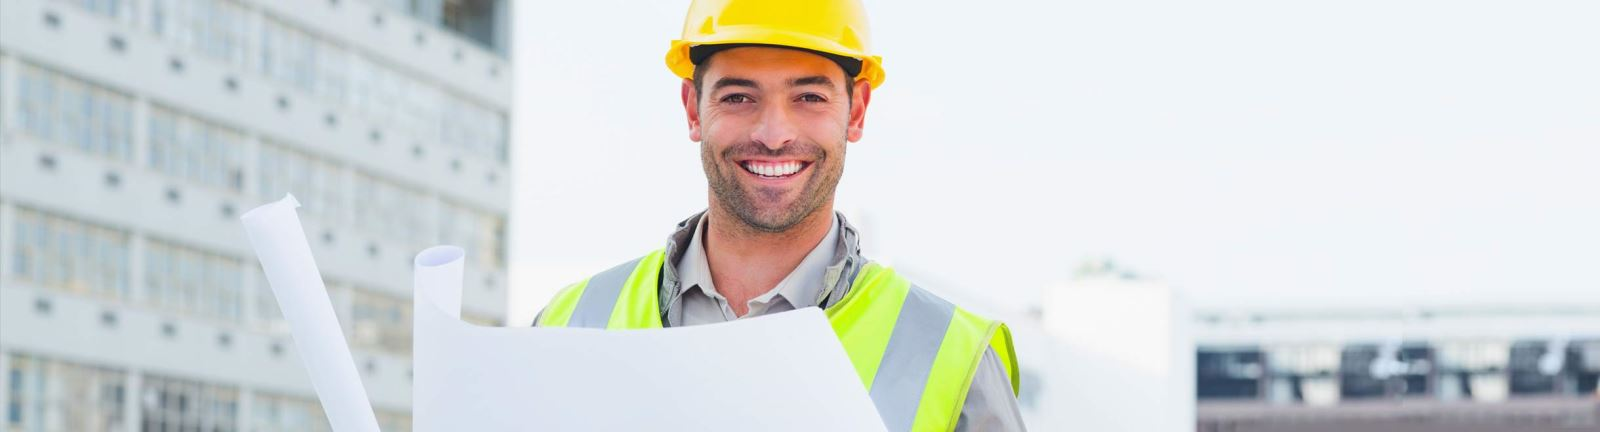 Image of construction worker